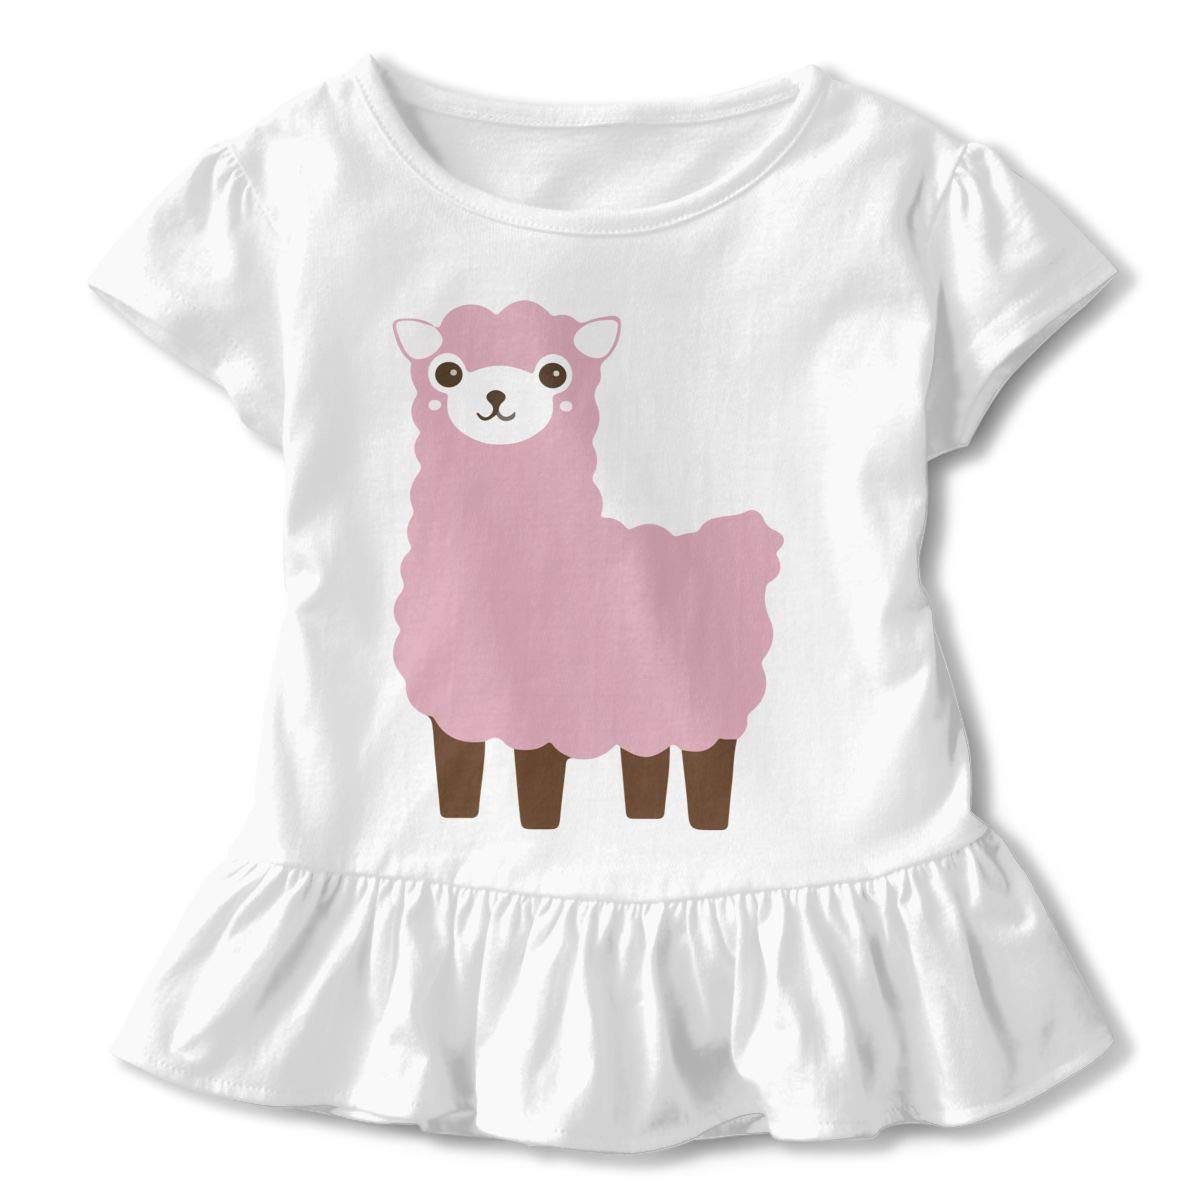 No Prob-Llama Kids Children Crew Neck Shirt Dress